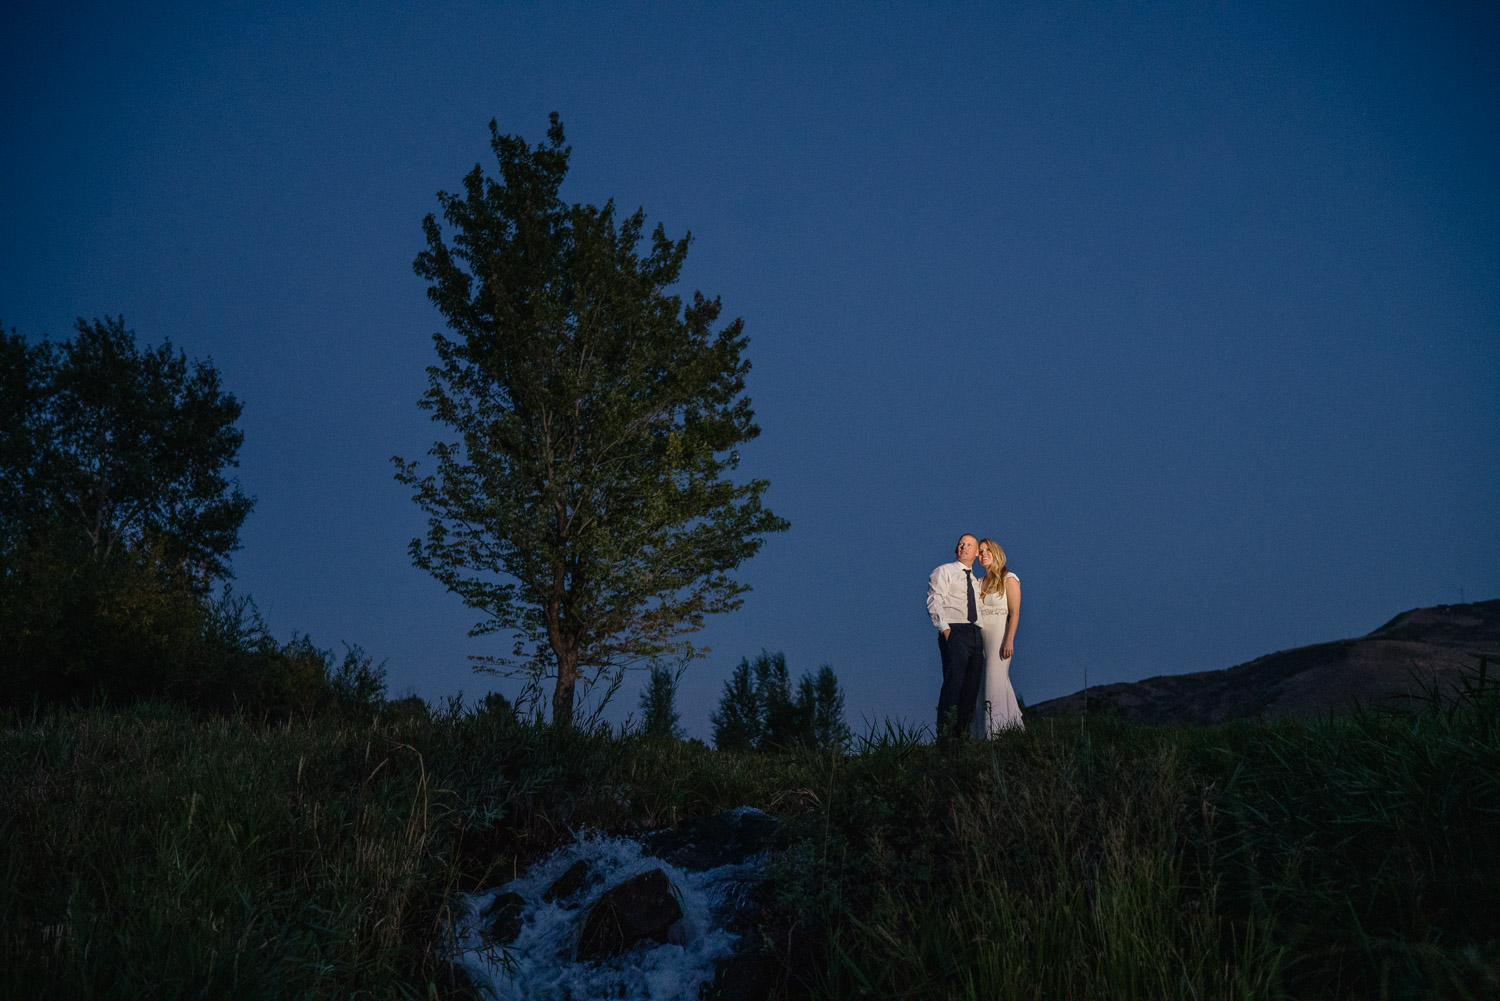 bride and groom happy under night sky with tree